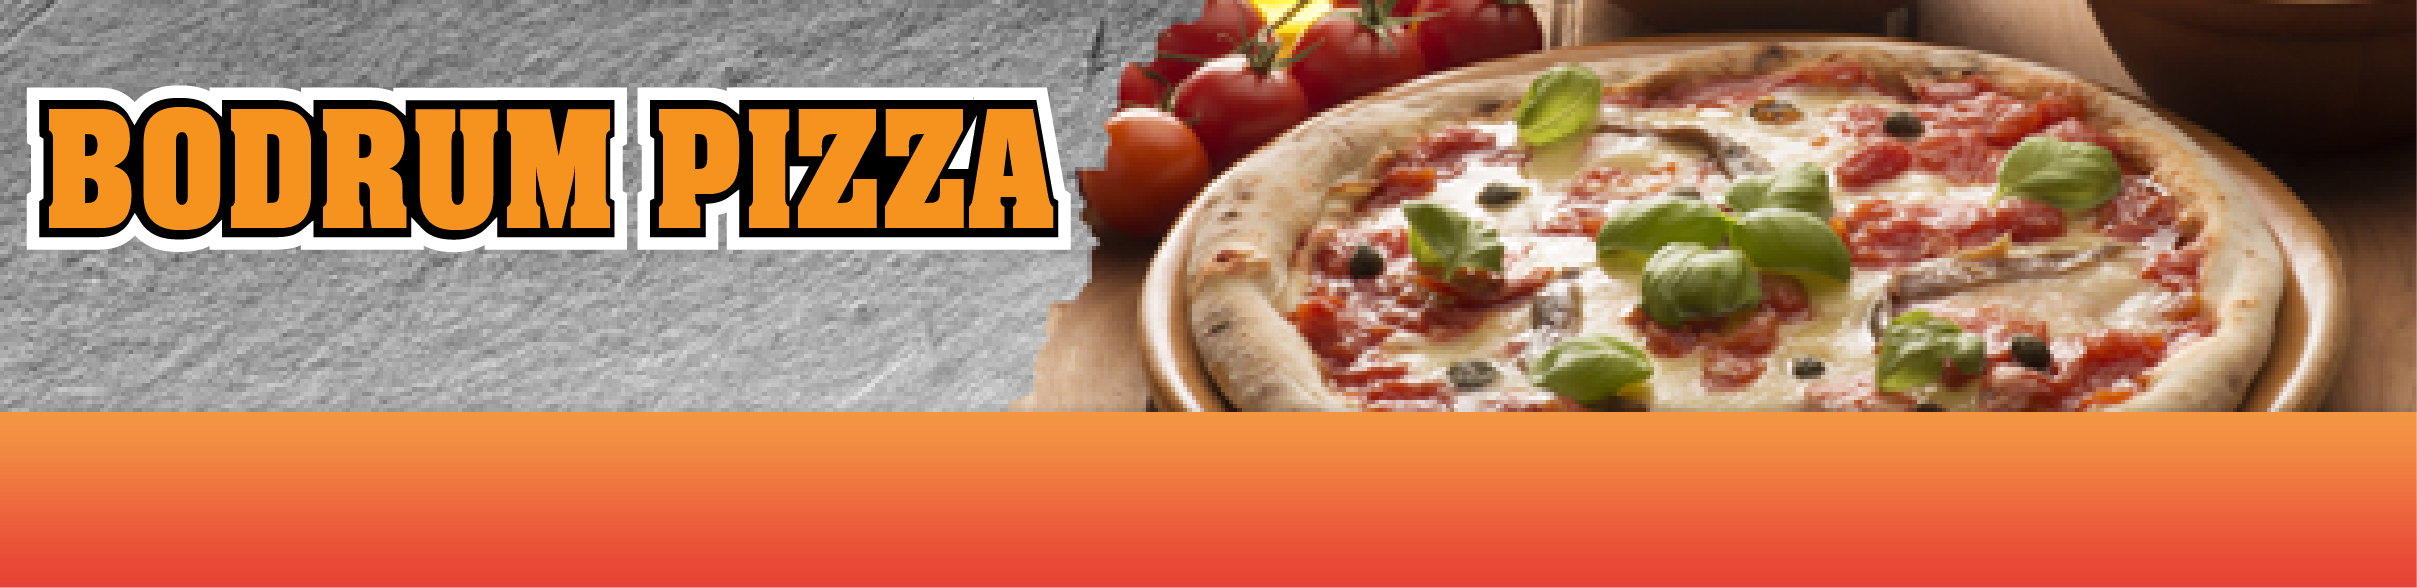 Bodrum Pizza Bundbanner